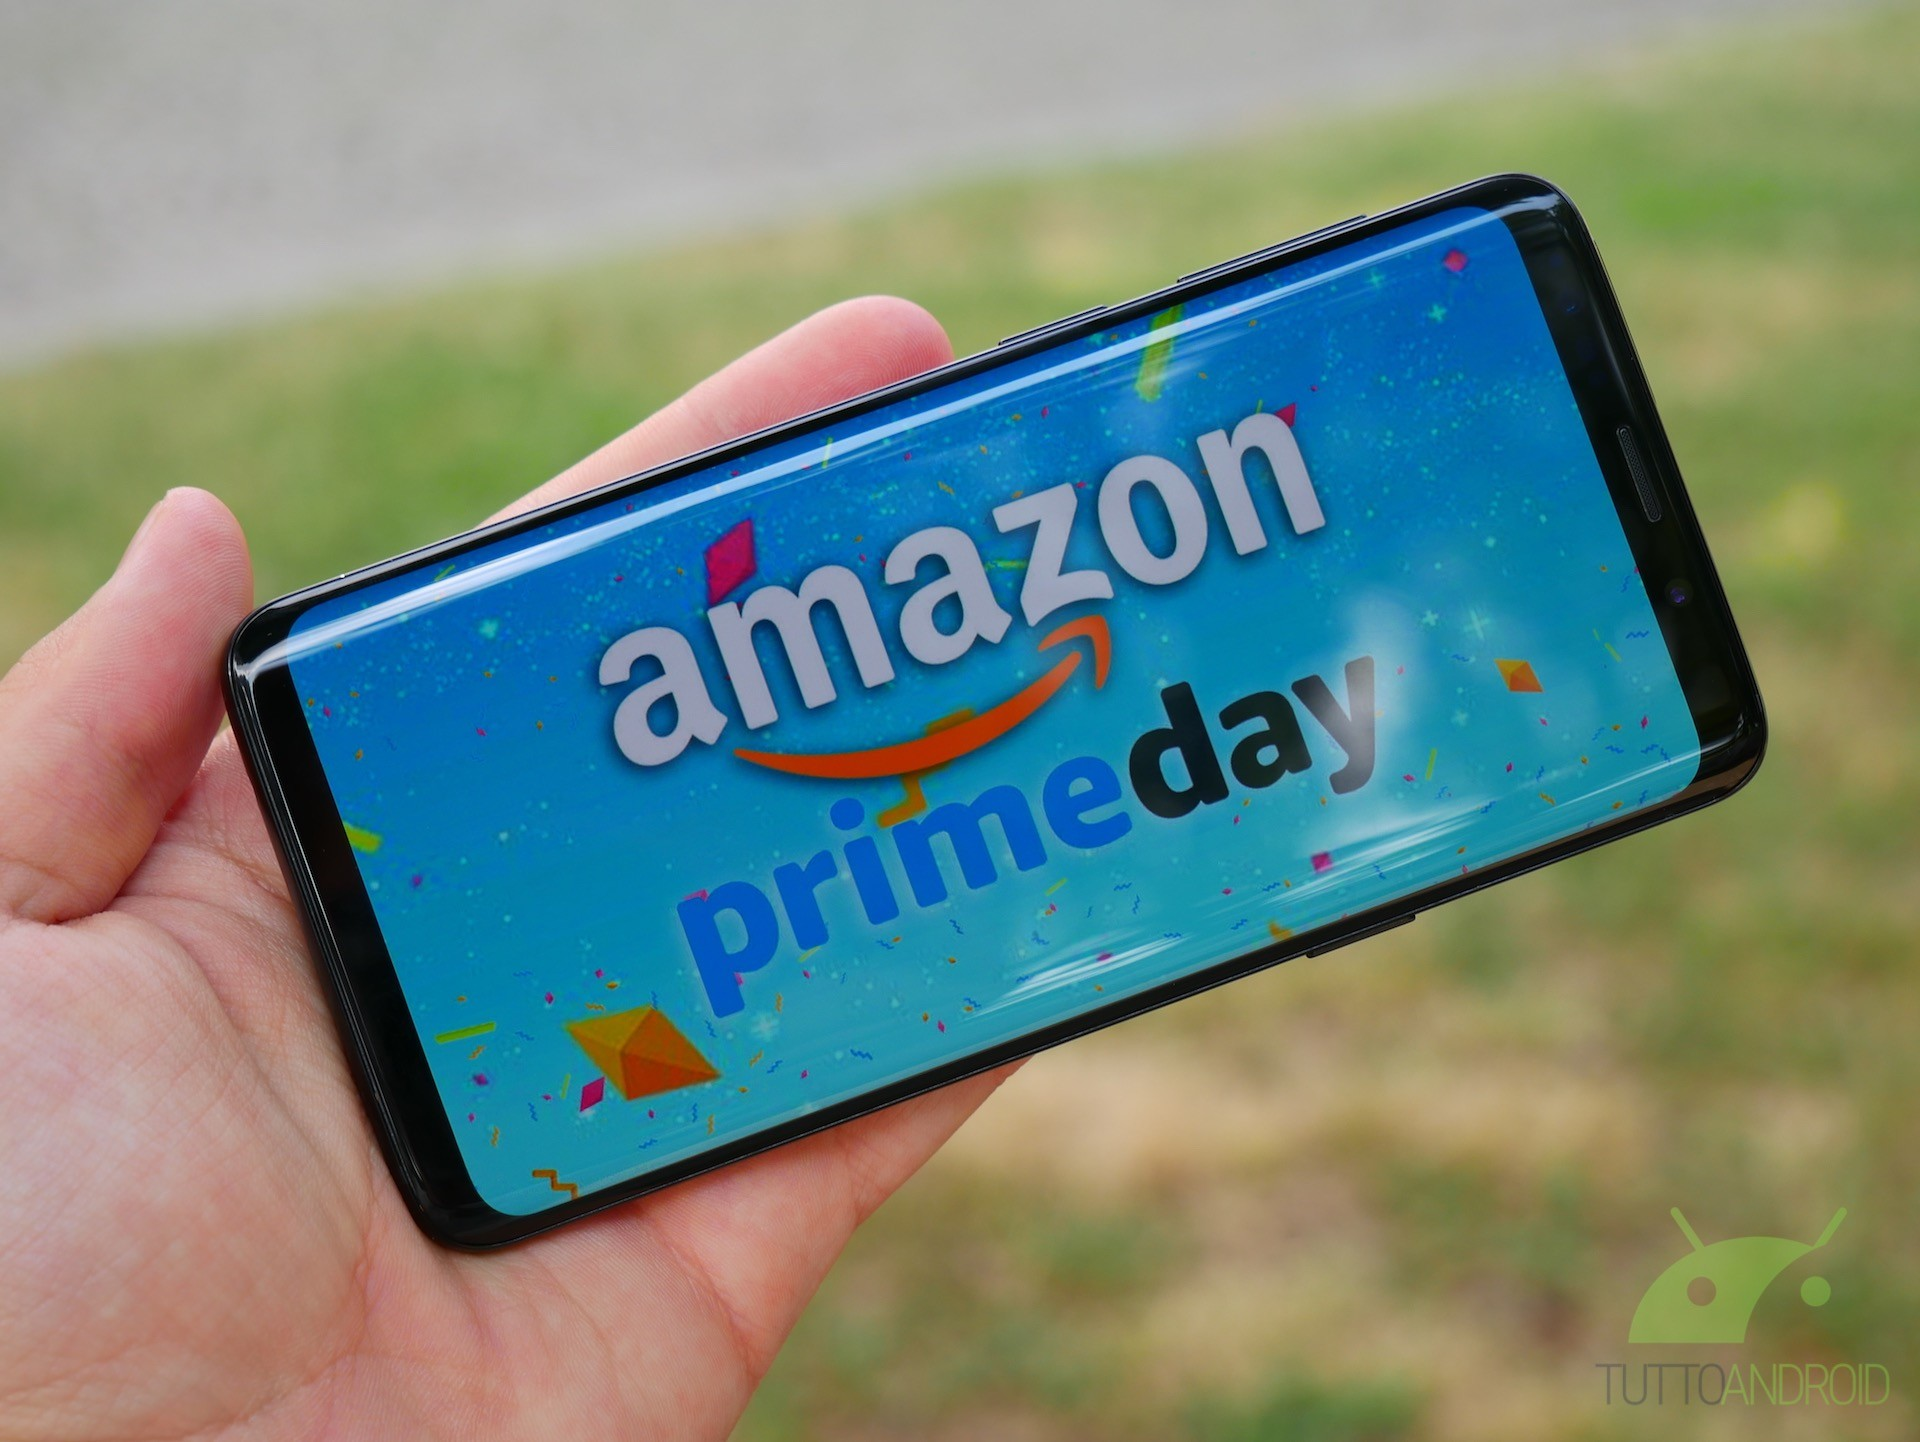 https://img.tuttoandroid.net/wp-content/uploads/2022/07/amazon_prime_day_tta_2.jpg